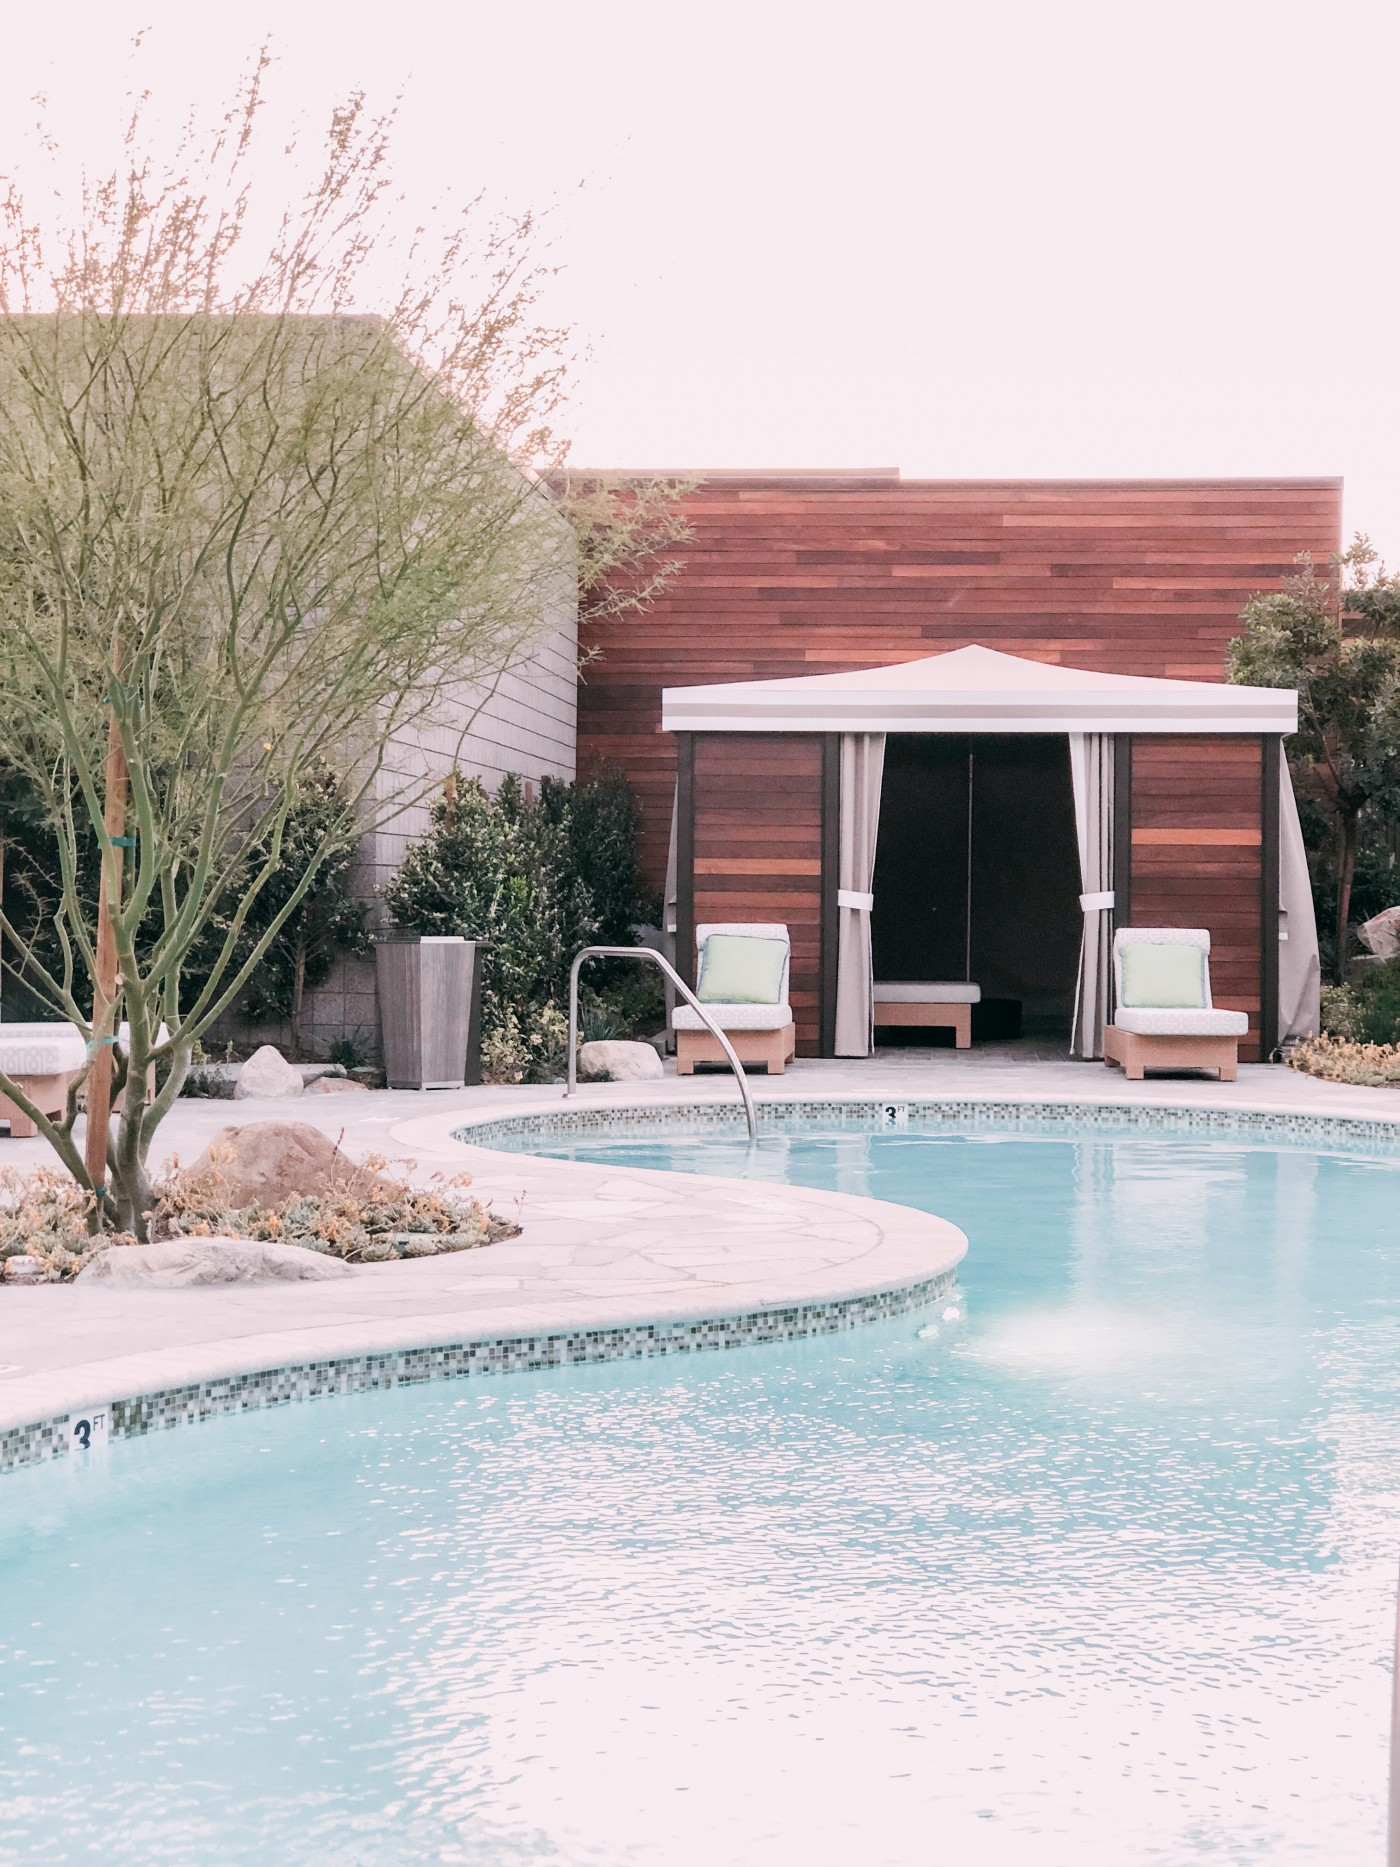 Summer is coming which of course means time to travel, right? Live in Southern California and need a bit of a staycation? See why you need to visit Temecula Valley this summer ASAP!